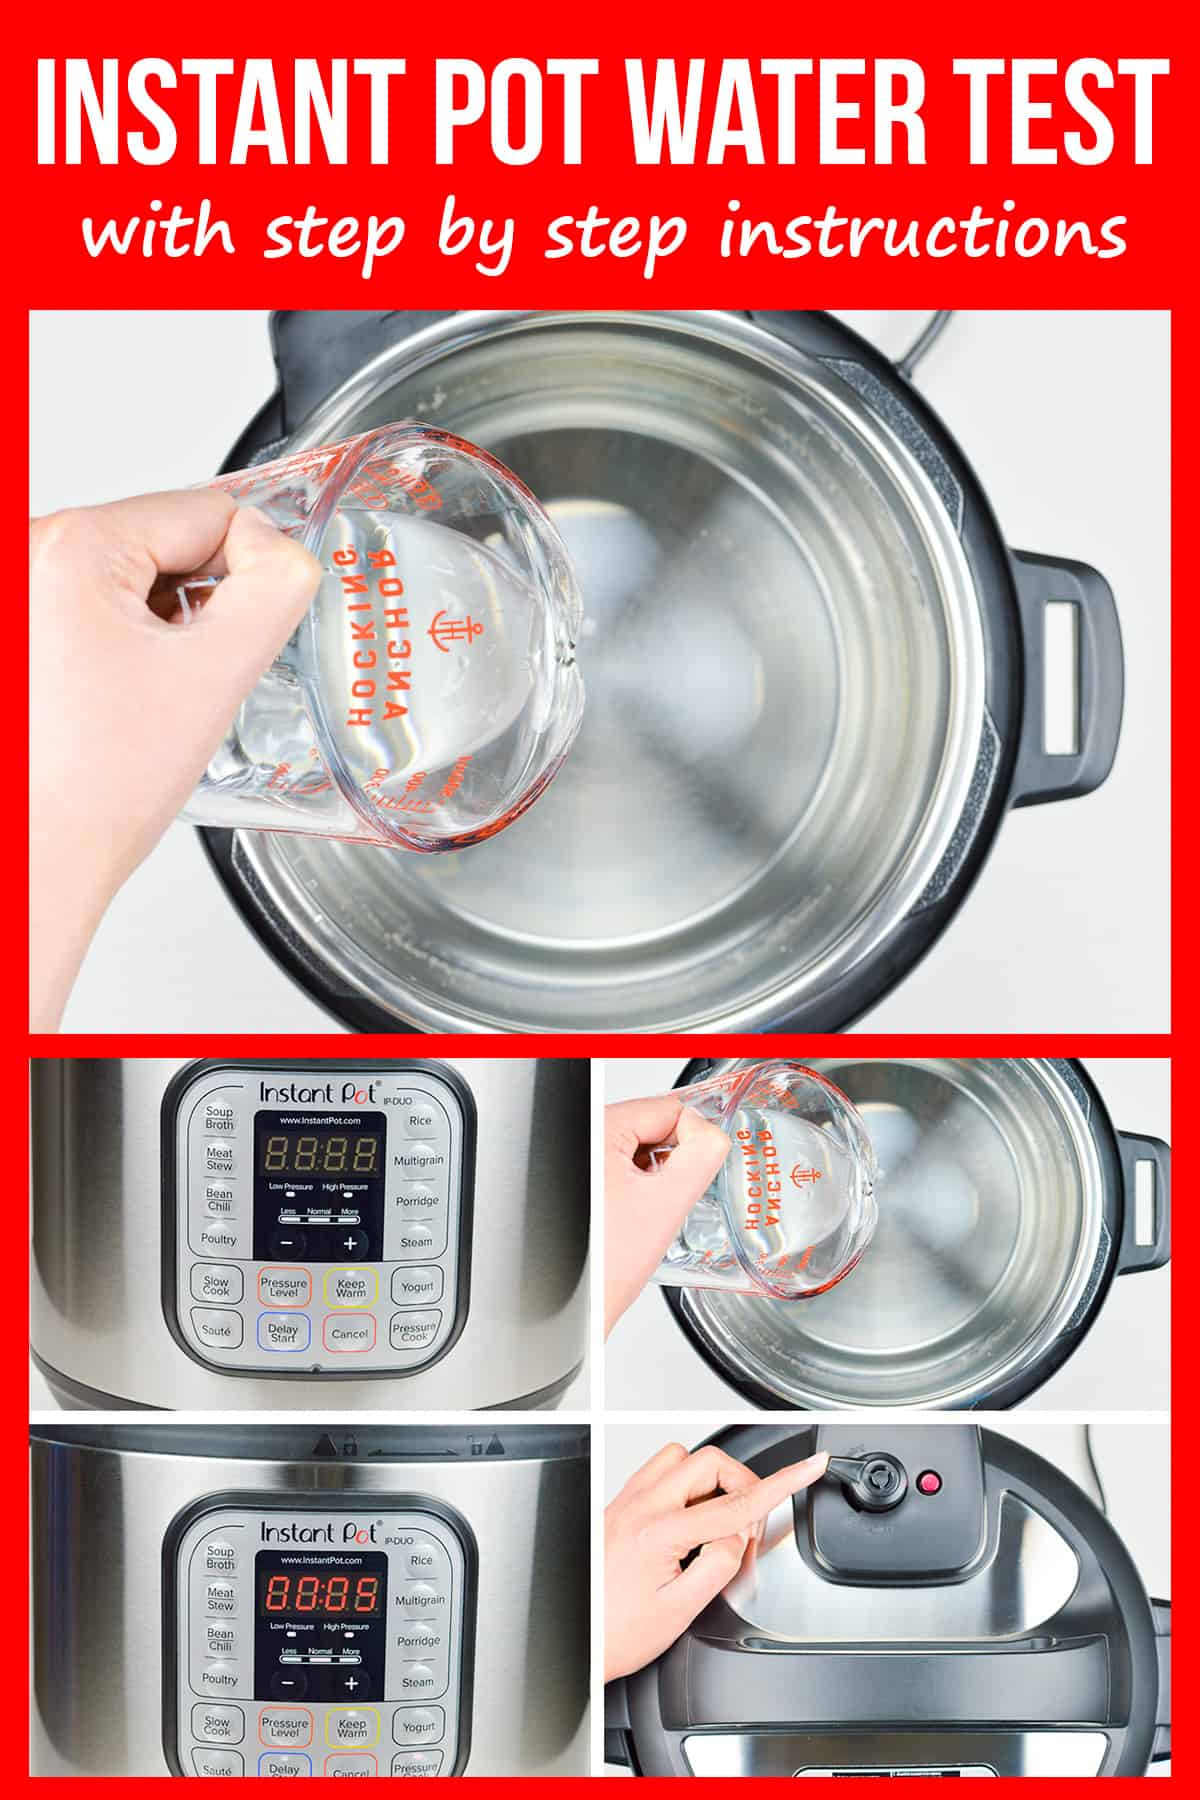 step by step photos of instant pot duo water test